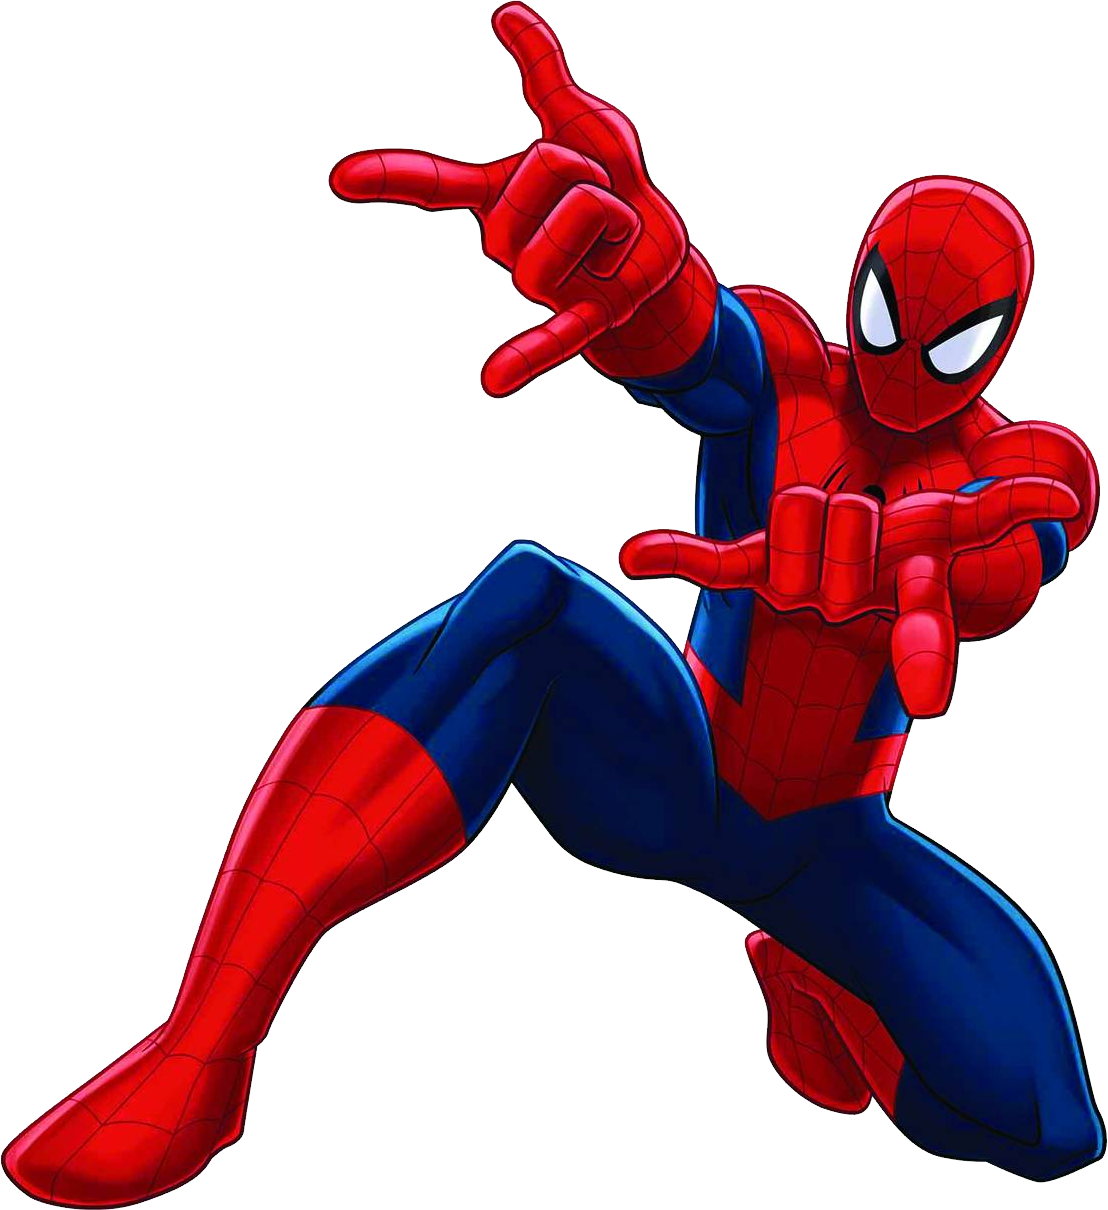 Spiderman background png. Images transparent free download